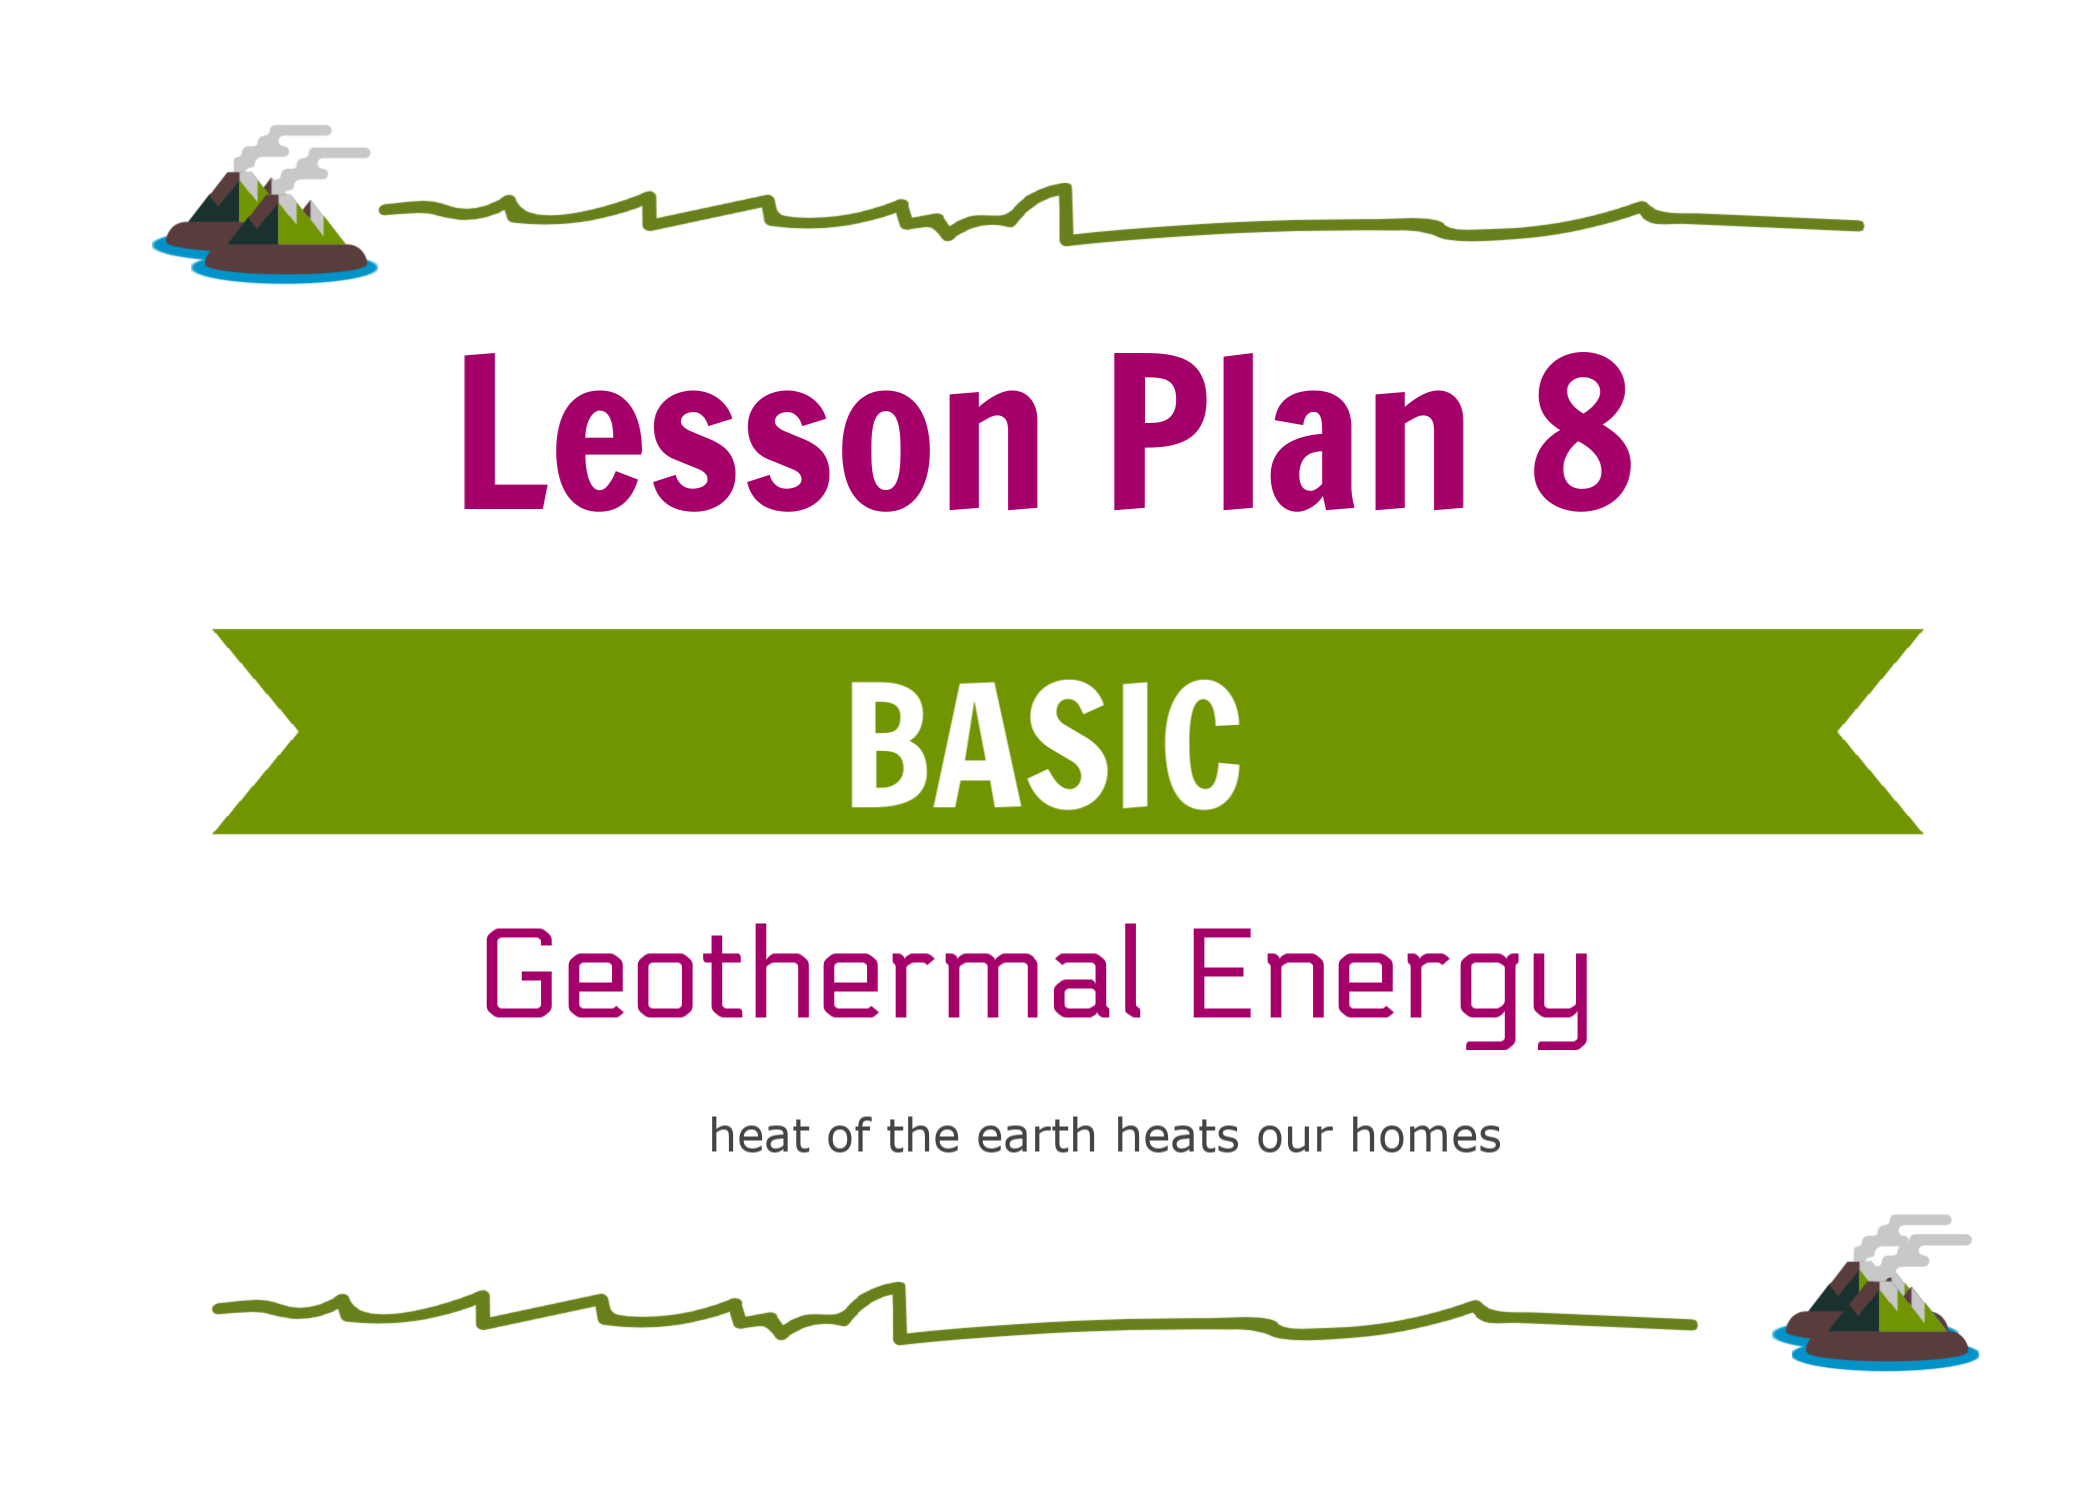 - This lesson introduces geothermal energy and regions in the world best suited for geothermal energy production.